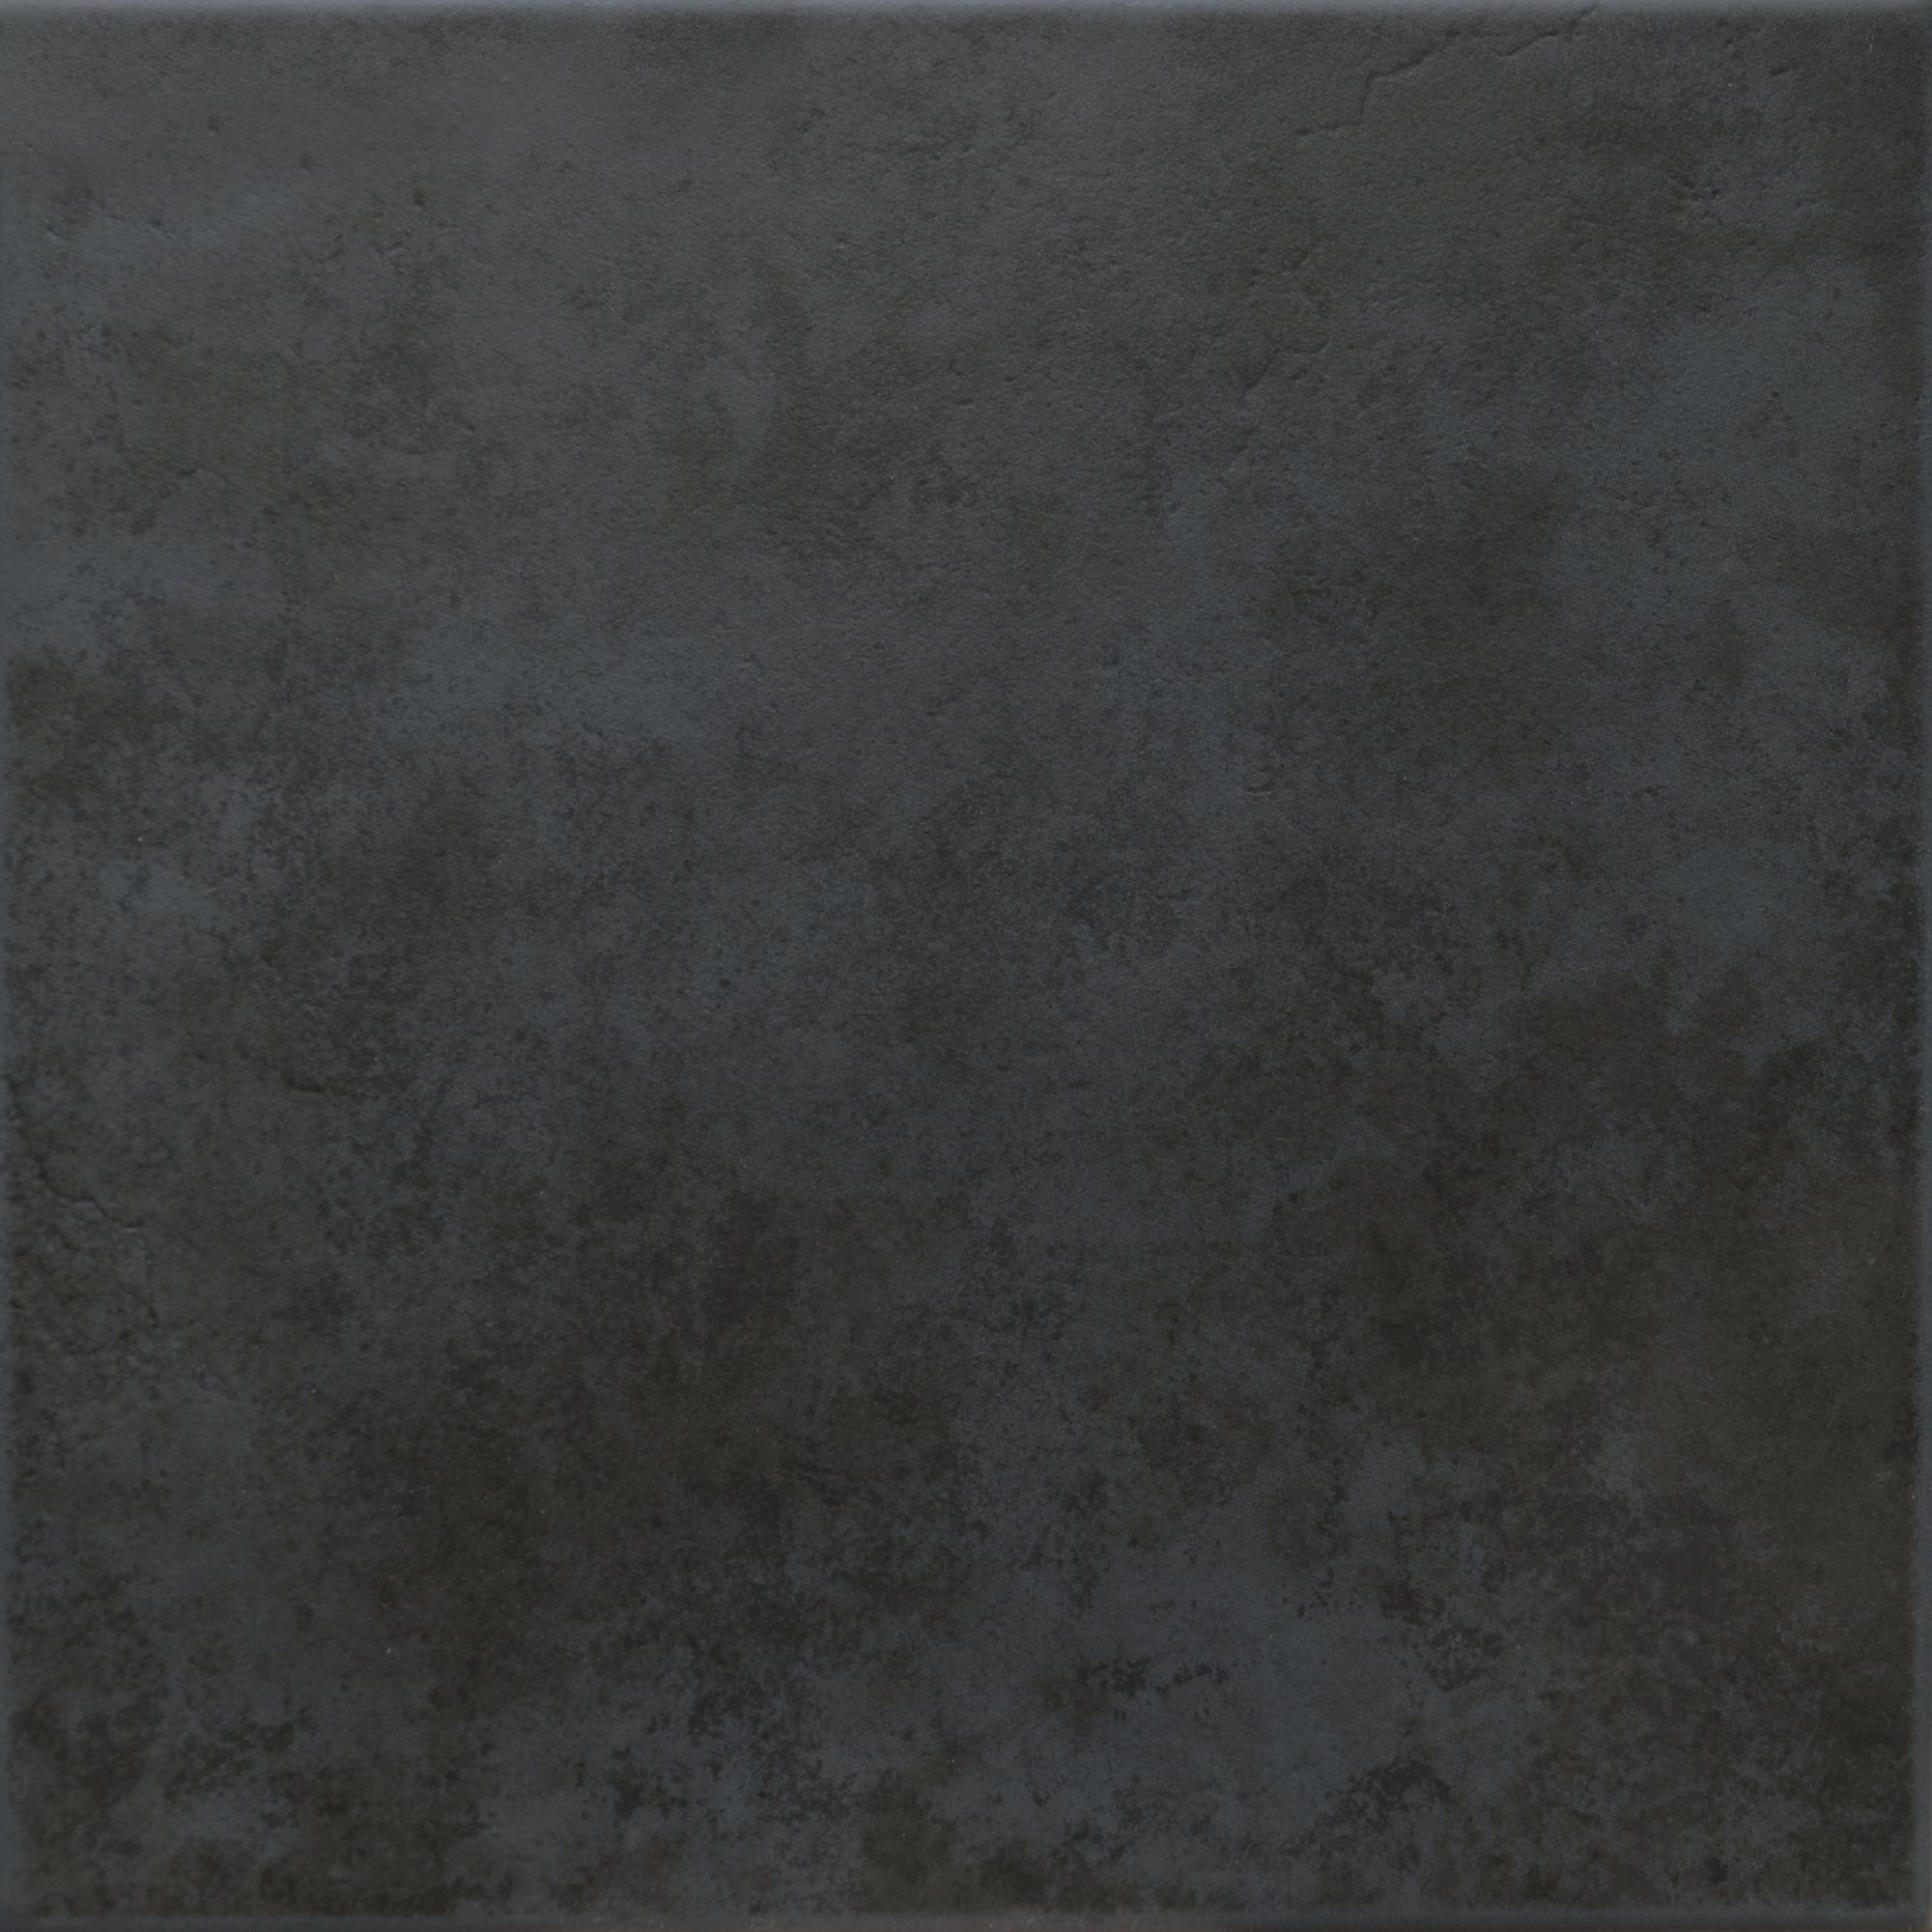 Cotto 330 x 330mm Thaicera Agra Charcoal Ceramic Floor Tile ...